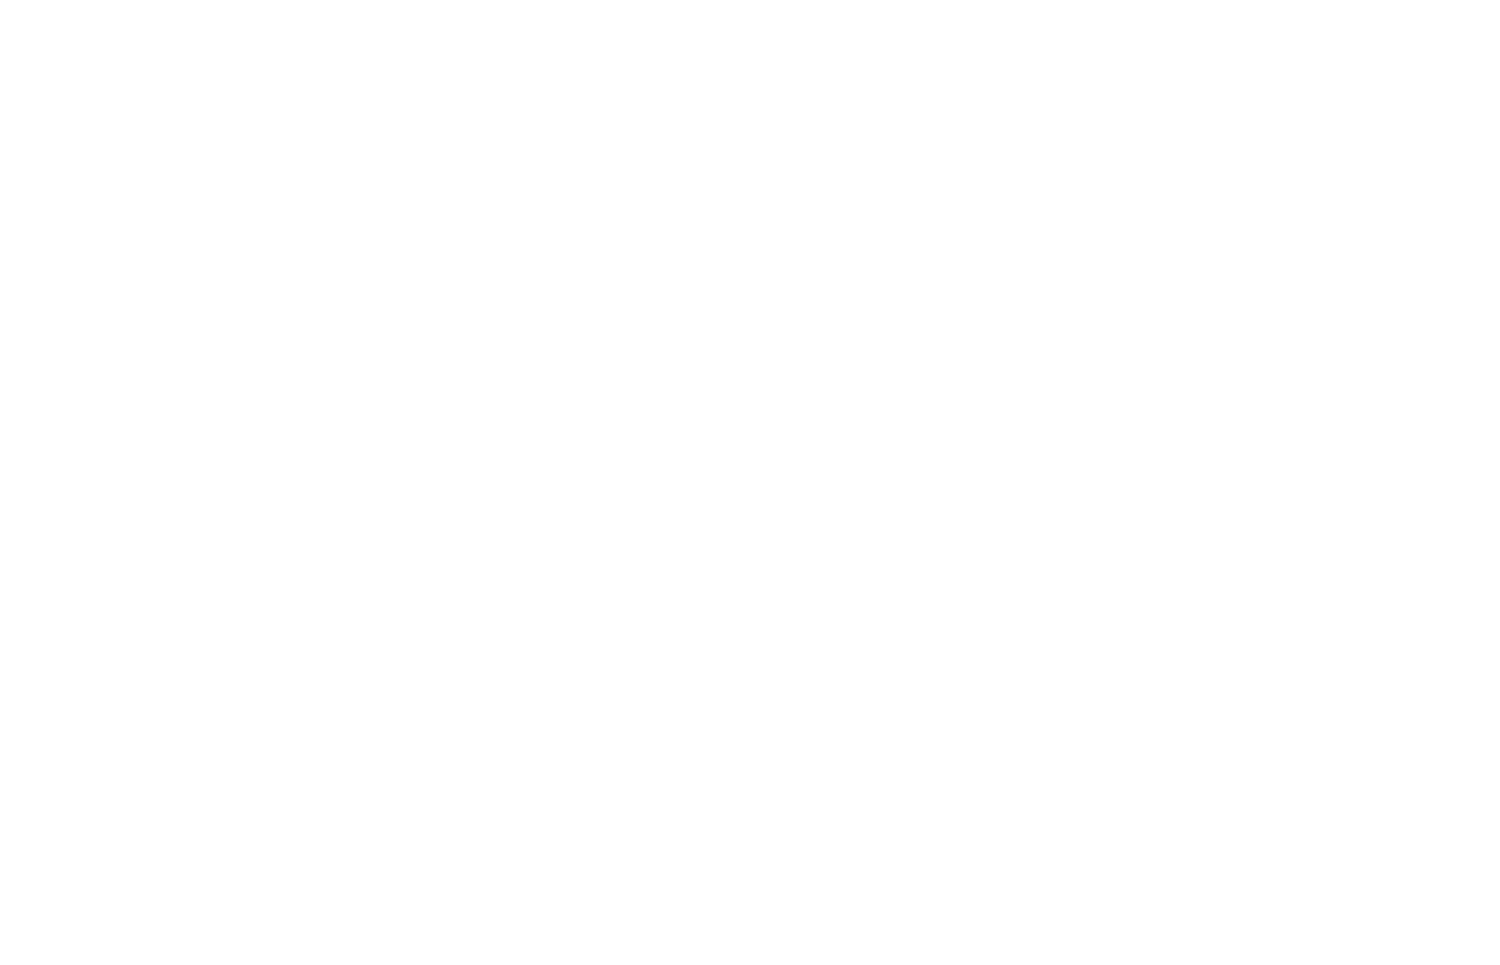 Michelle Courtney Berry